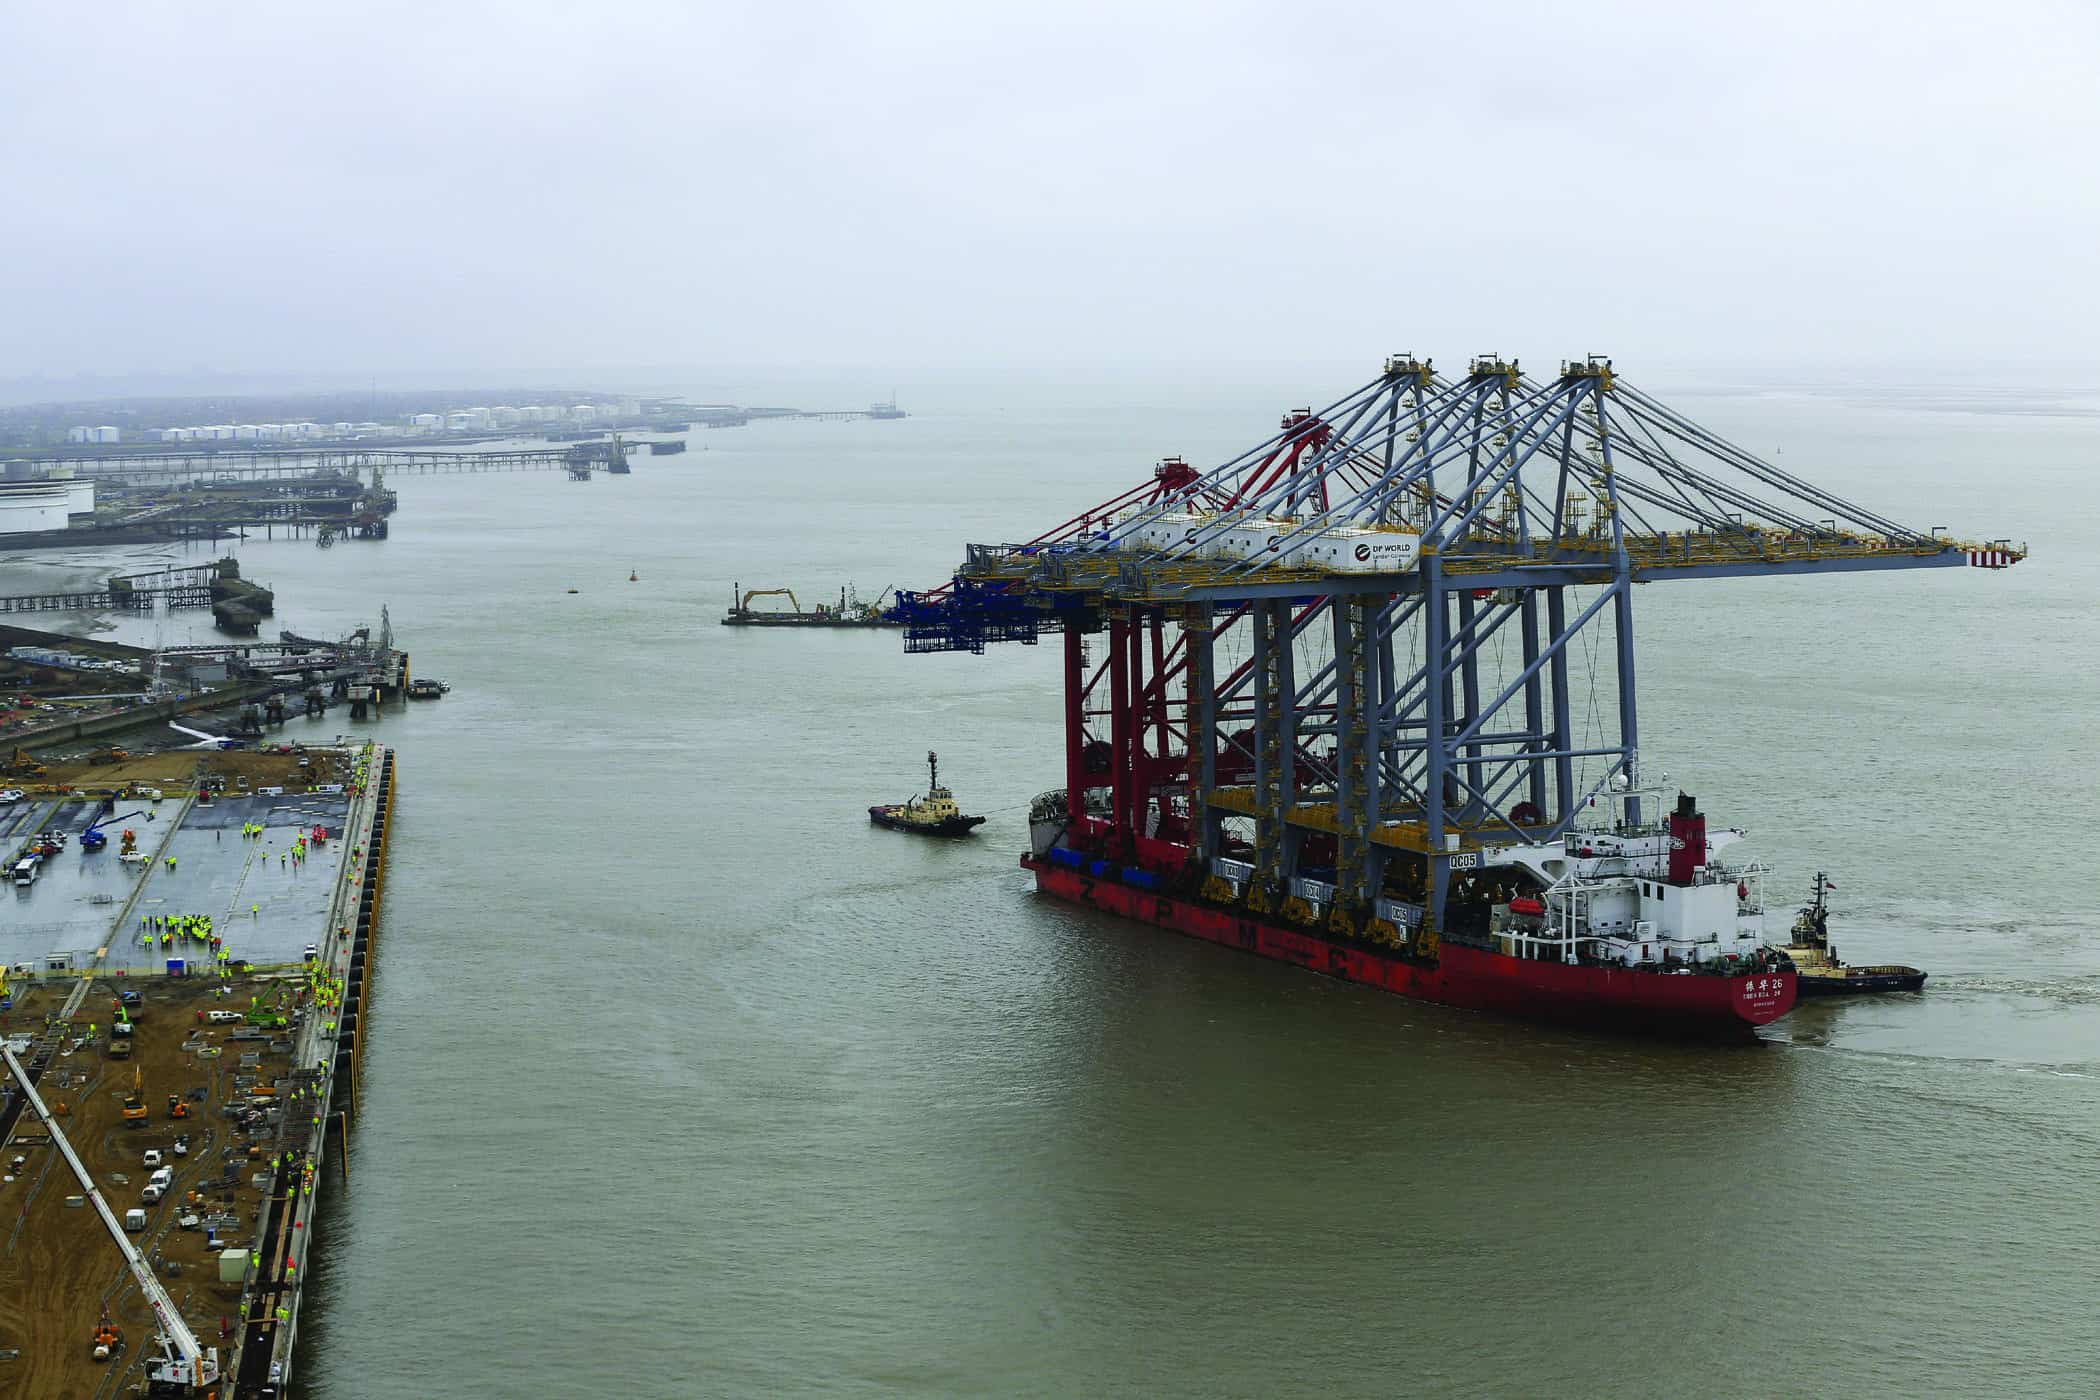 Giant cranes arrive at UK's new super-port